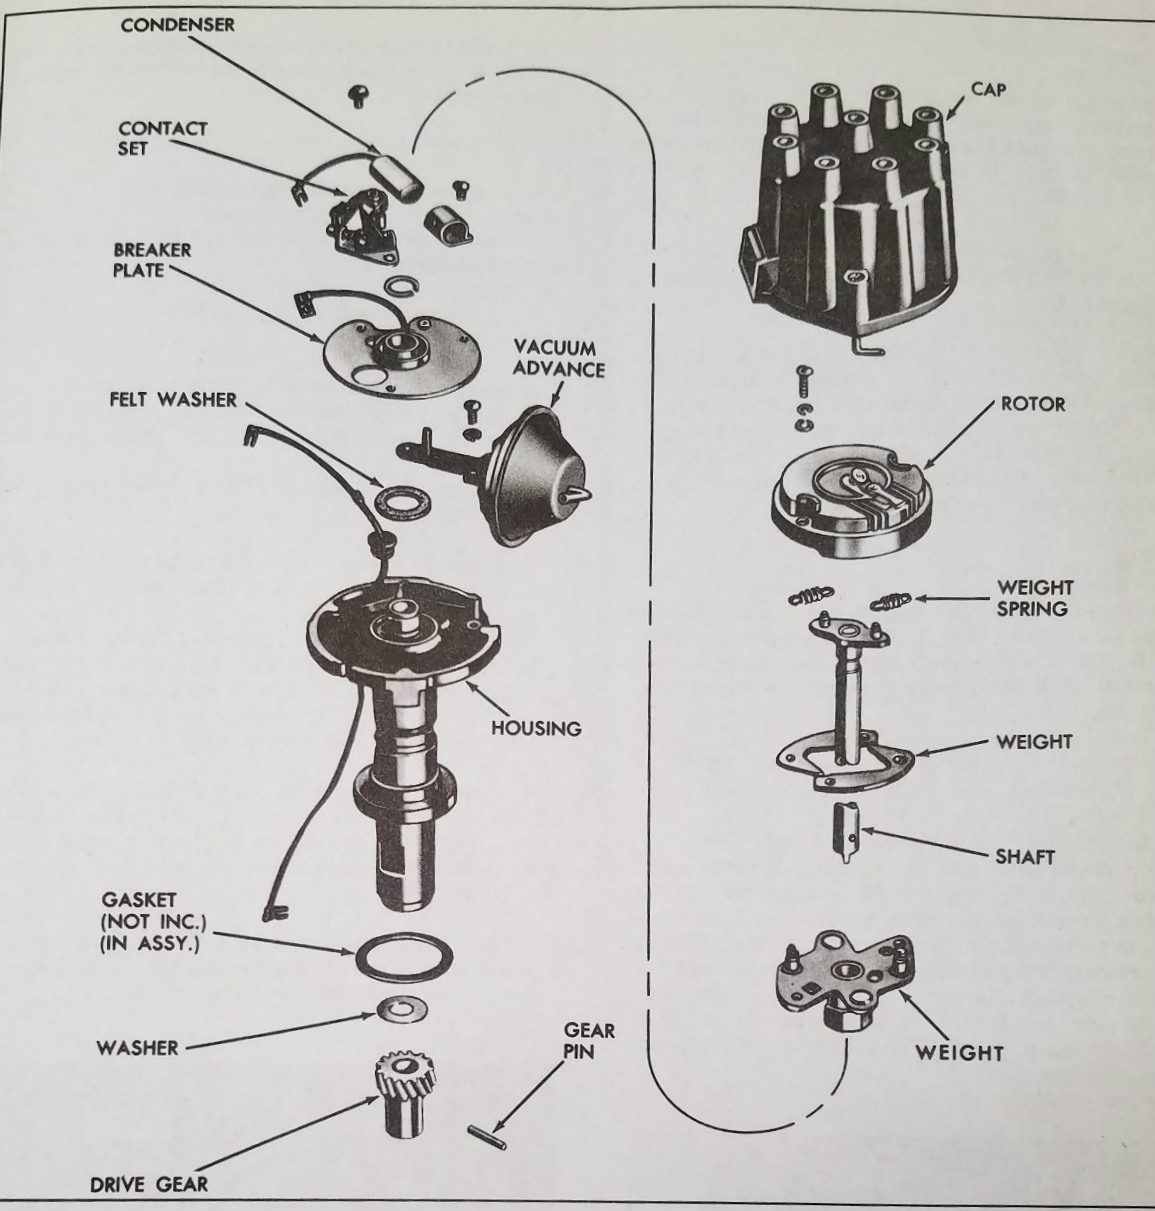 68goat.com - Ignition systems: what's the point?